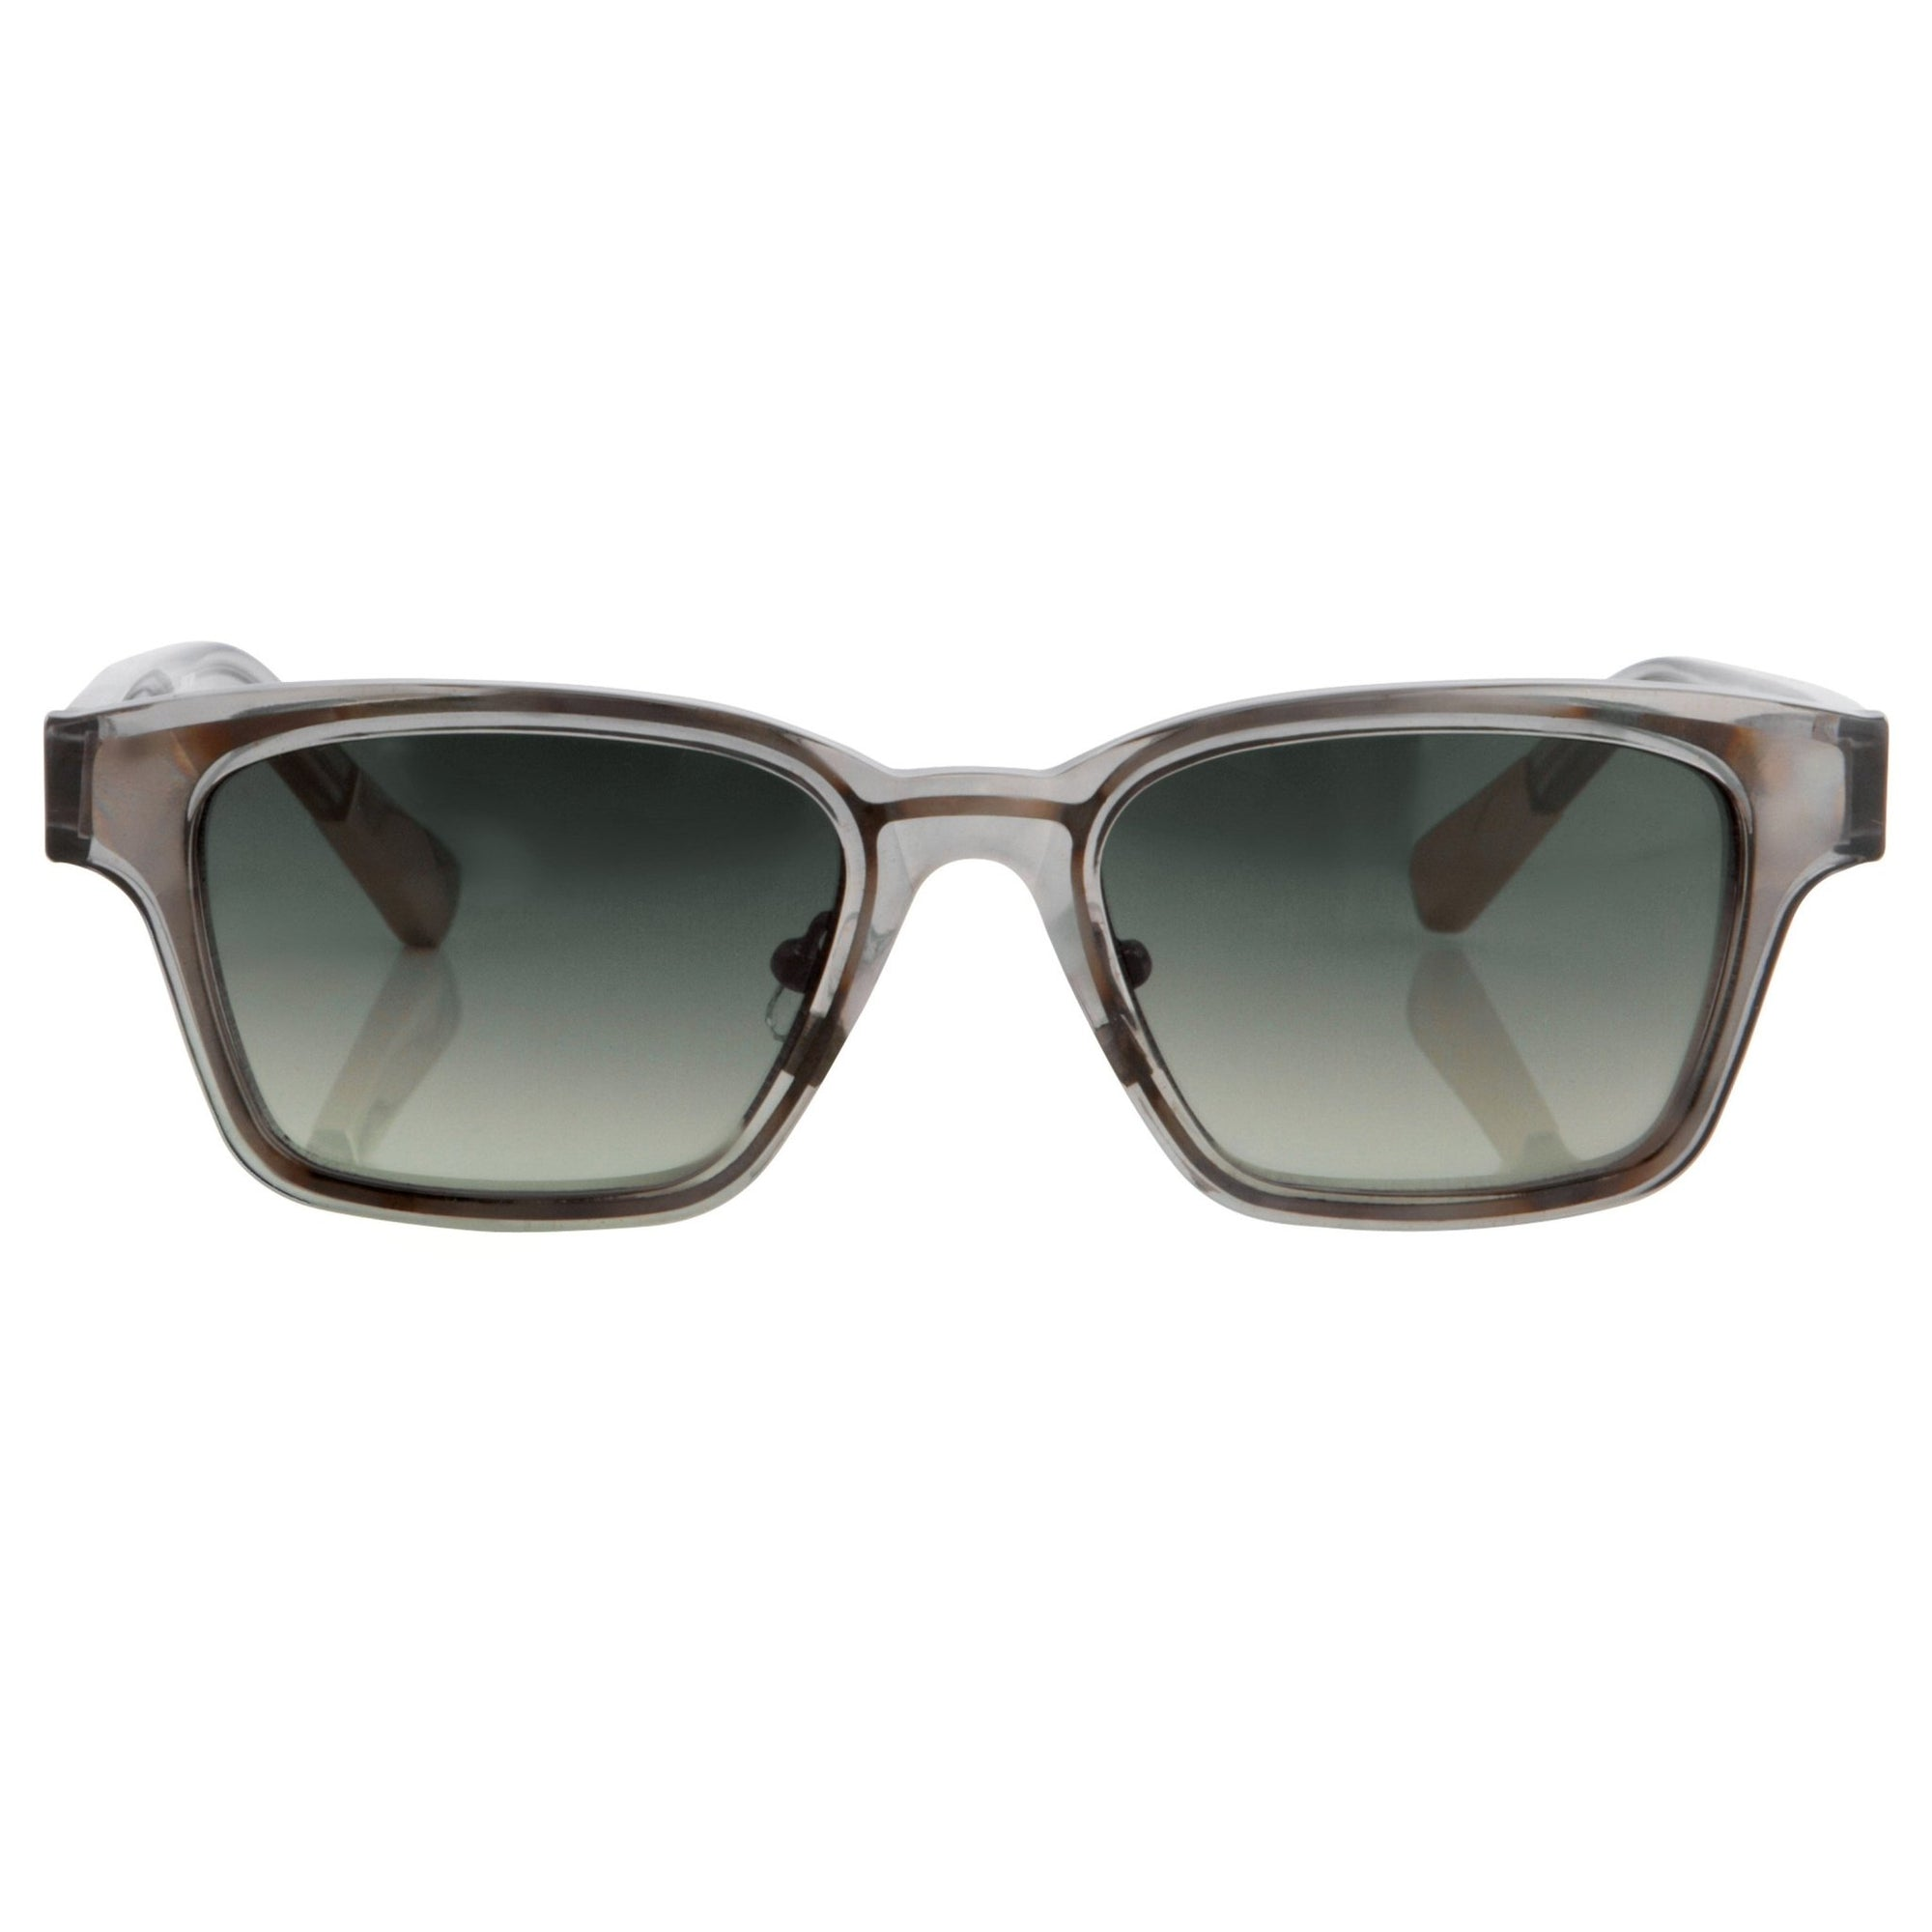 Kris Van Assche Sunglasses with Rectangular Translucent Smoke Metal and Grey Graduated Lenses Category 3 - KVA18C8SUN - Watches & Crystals